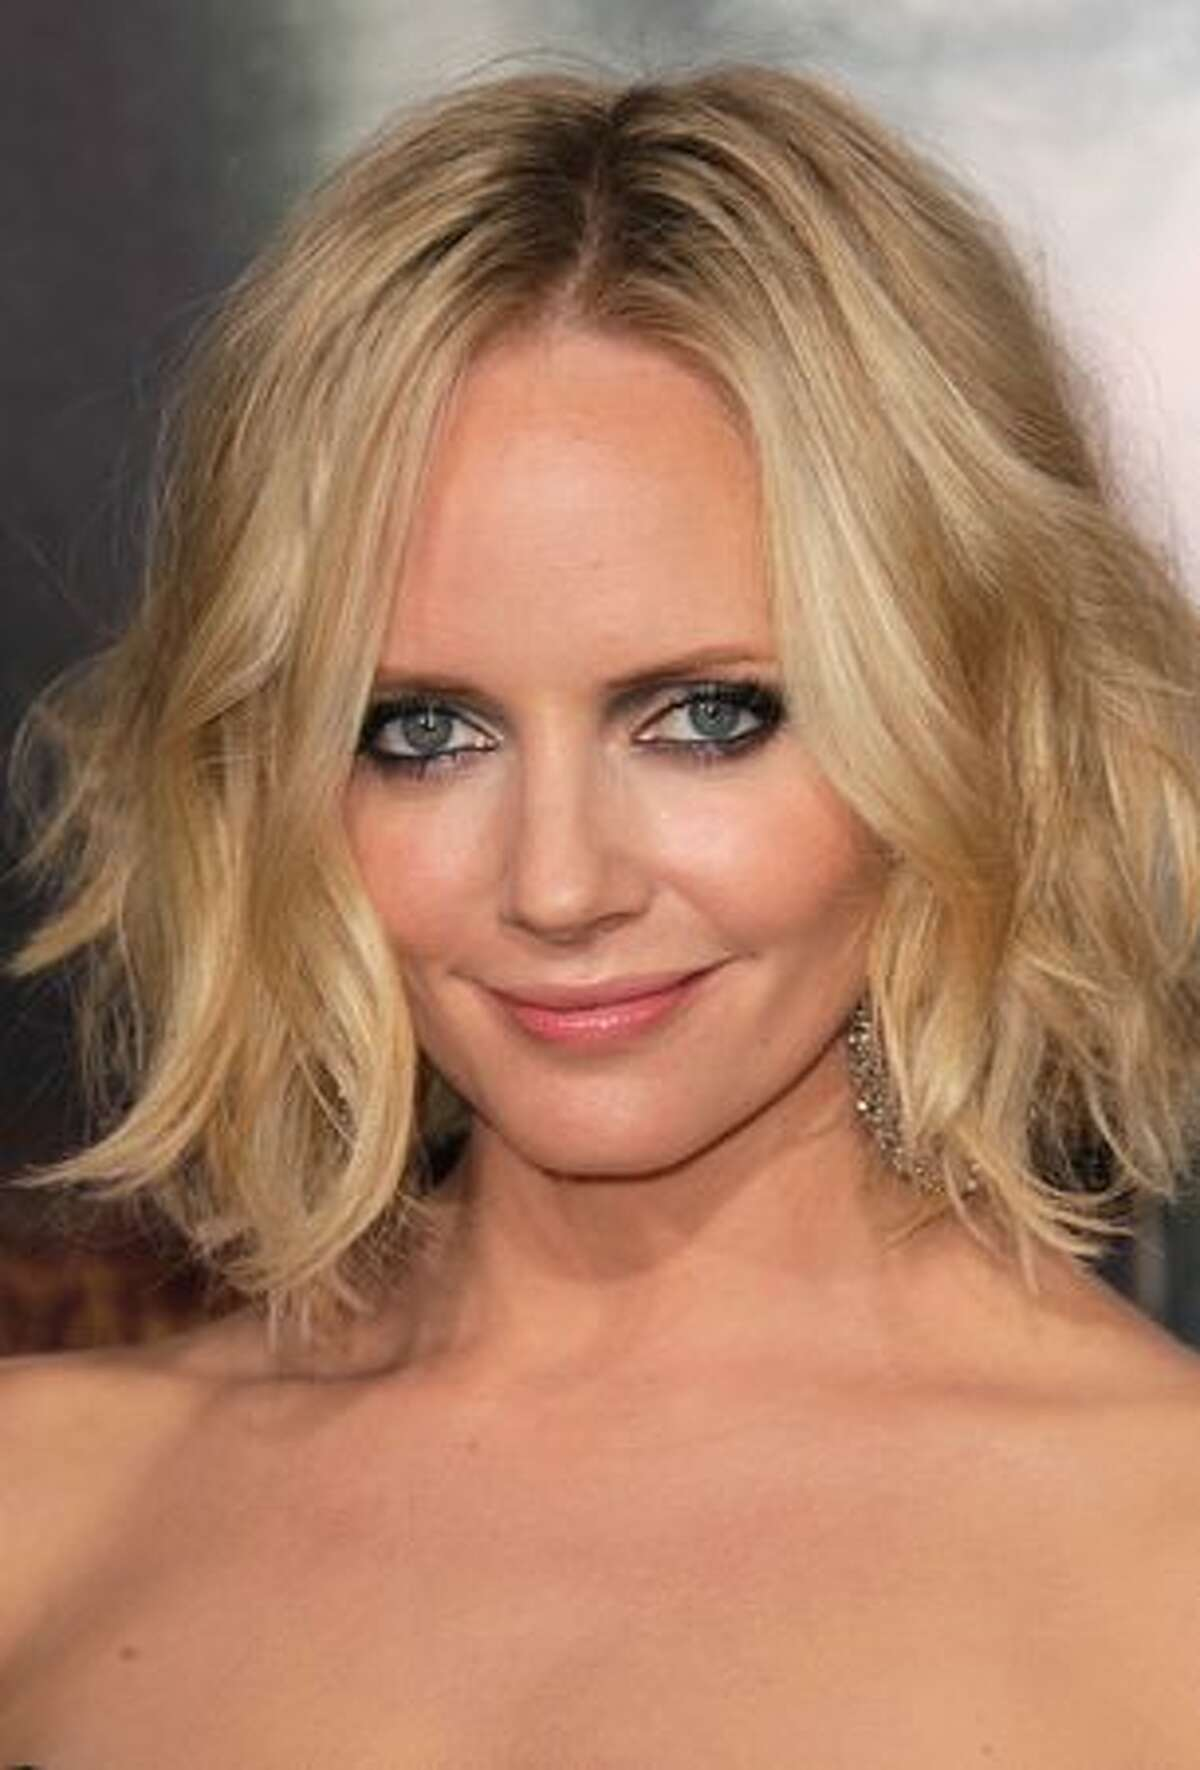 Actress Marley Shelton attends the premiere of Warner Brothers'